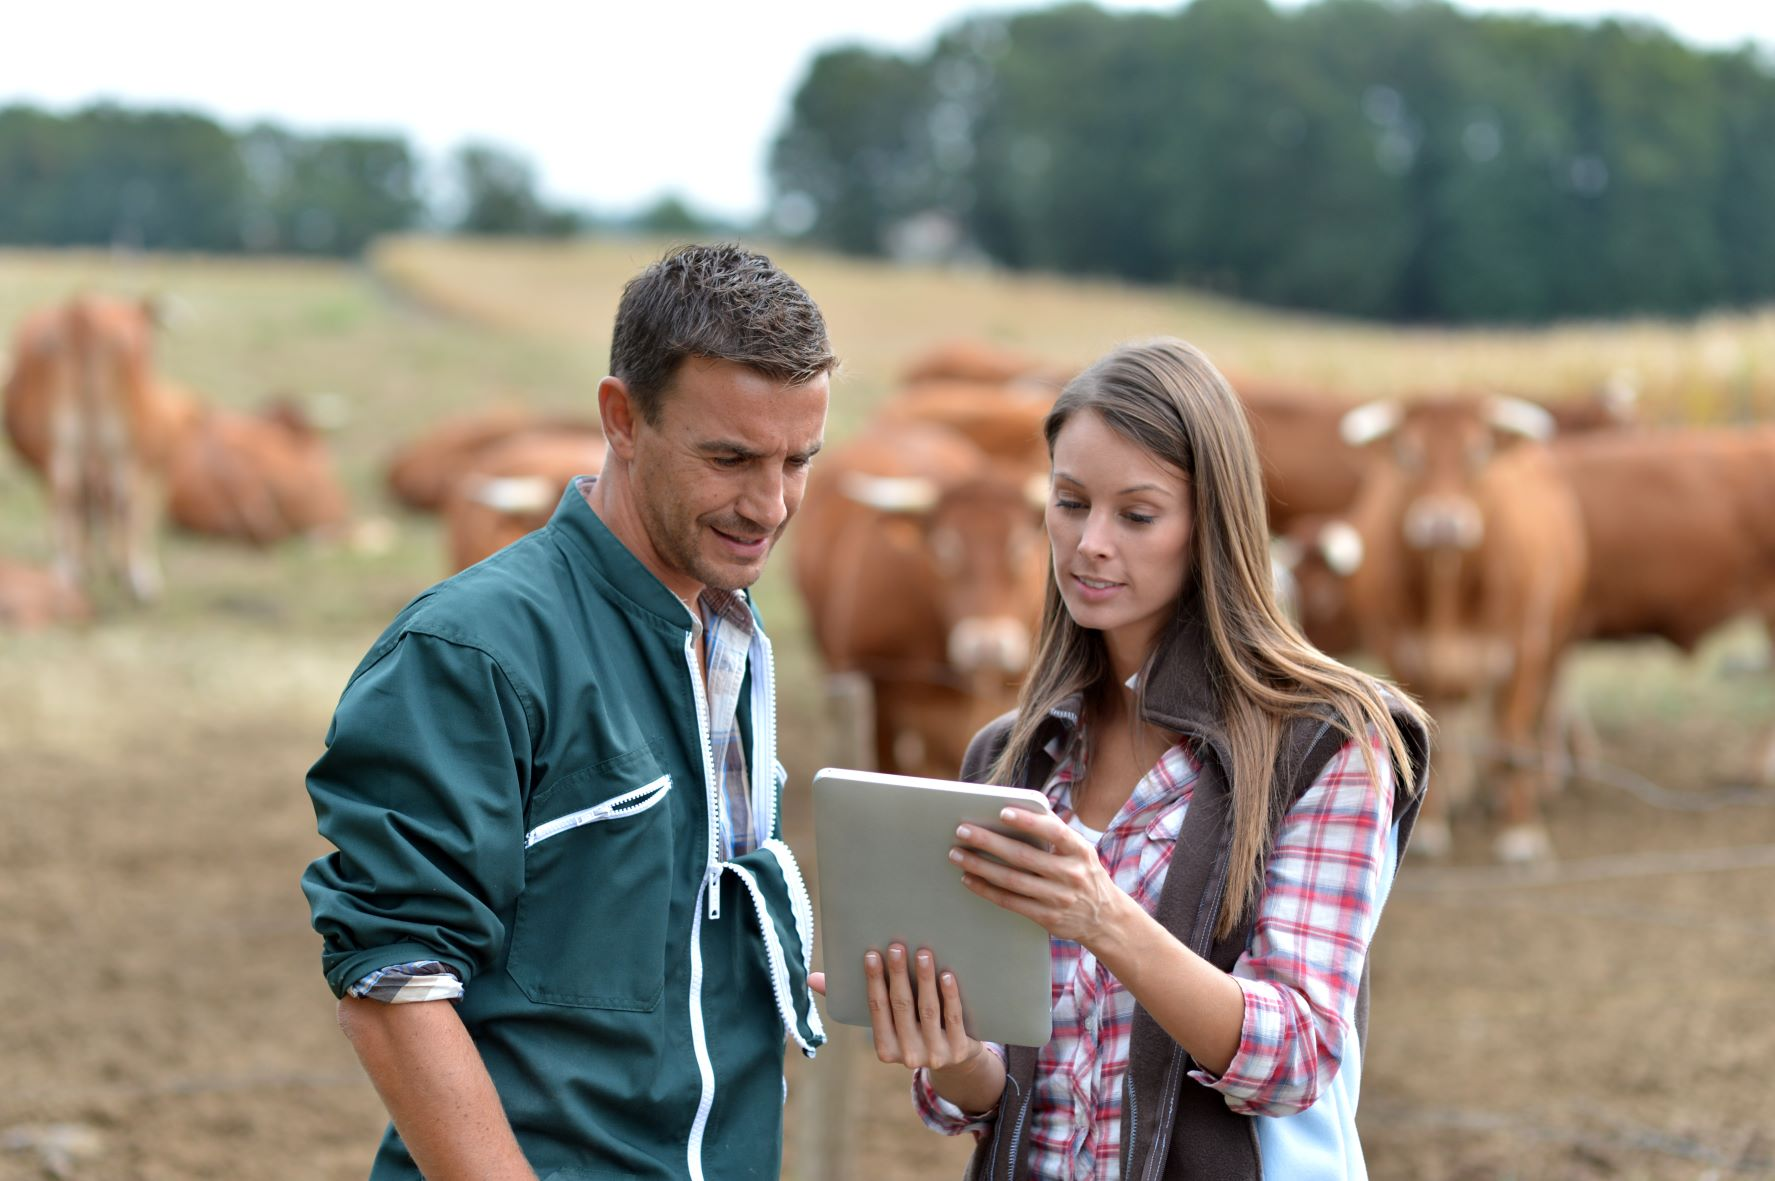 Creating a safe work environment for farmhands;